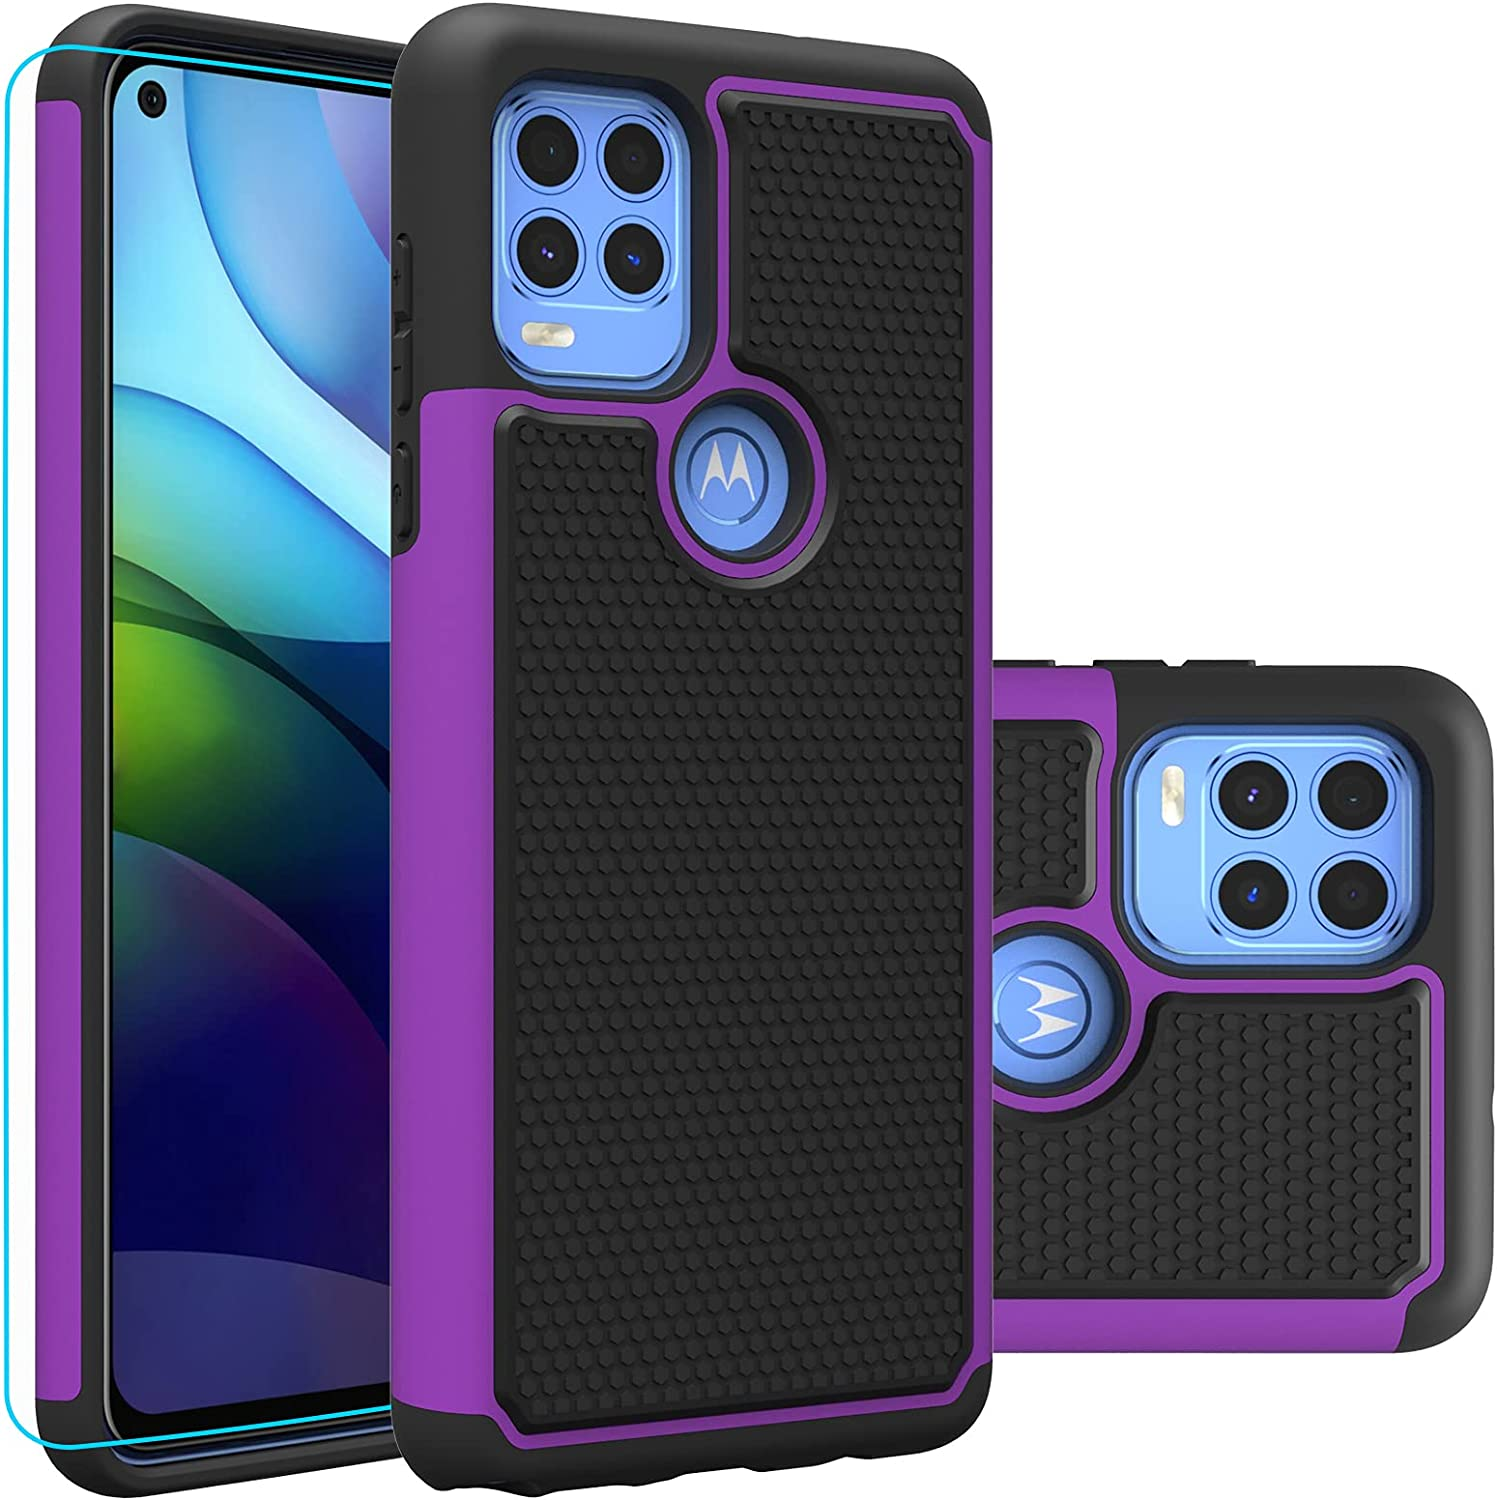 Moto G Stylus 5G Case, Motorola G Stylus 5G (2021) case with HD Screen Protector,Giner Dual Layer Military-Grade Defender Protective Phone Case Cover for Motorola Moto G Stylus 5G (2021)(Purple Armor)